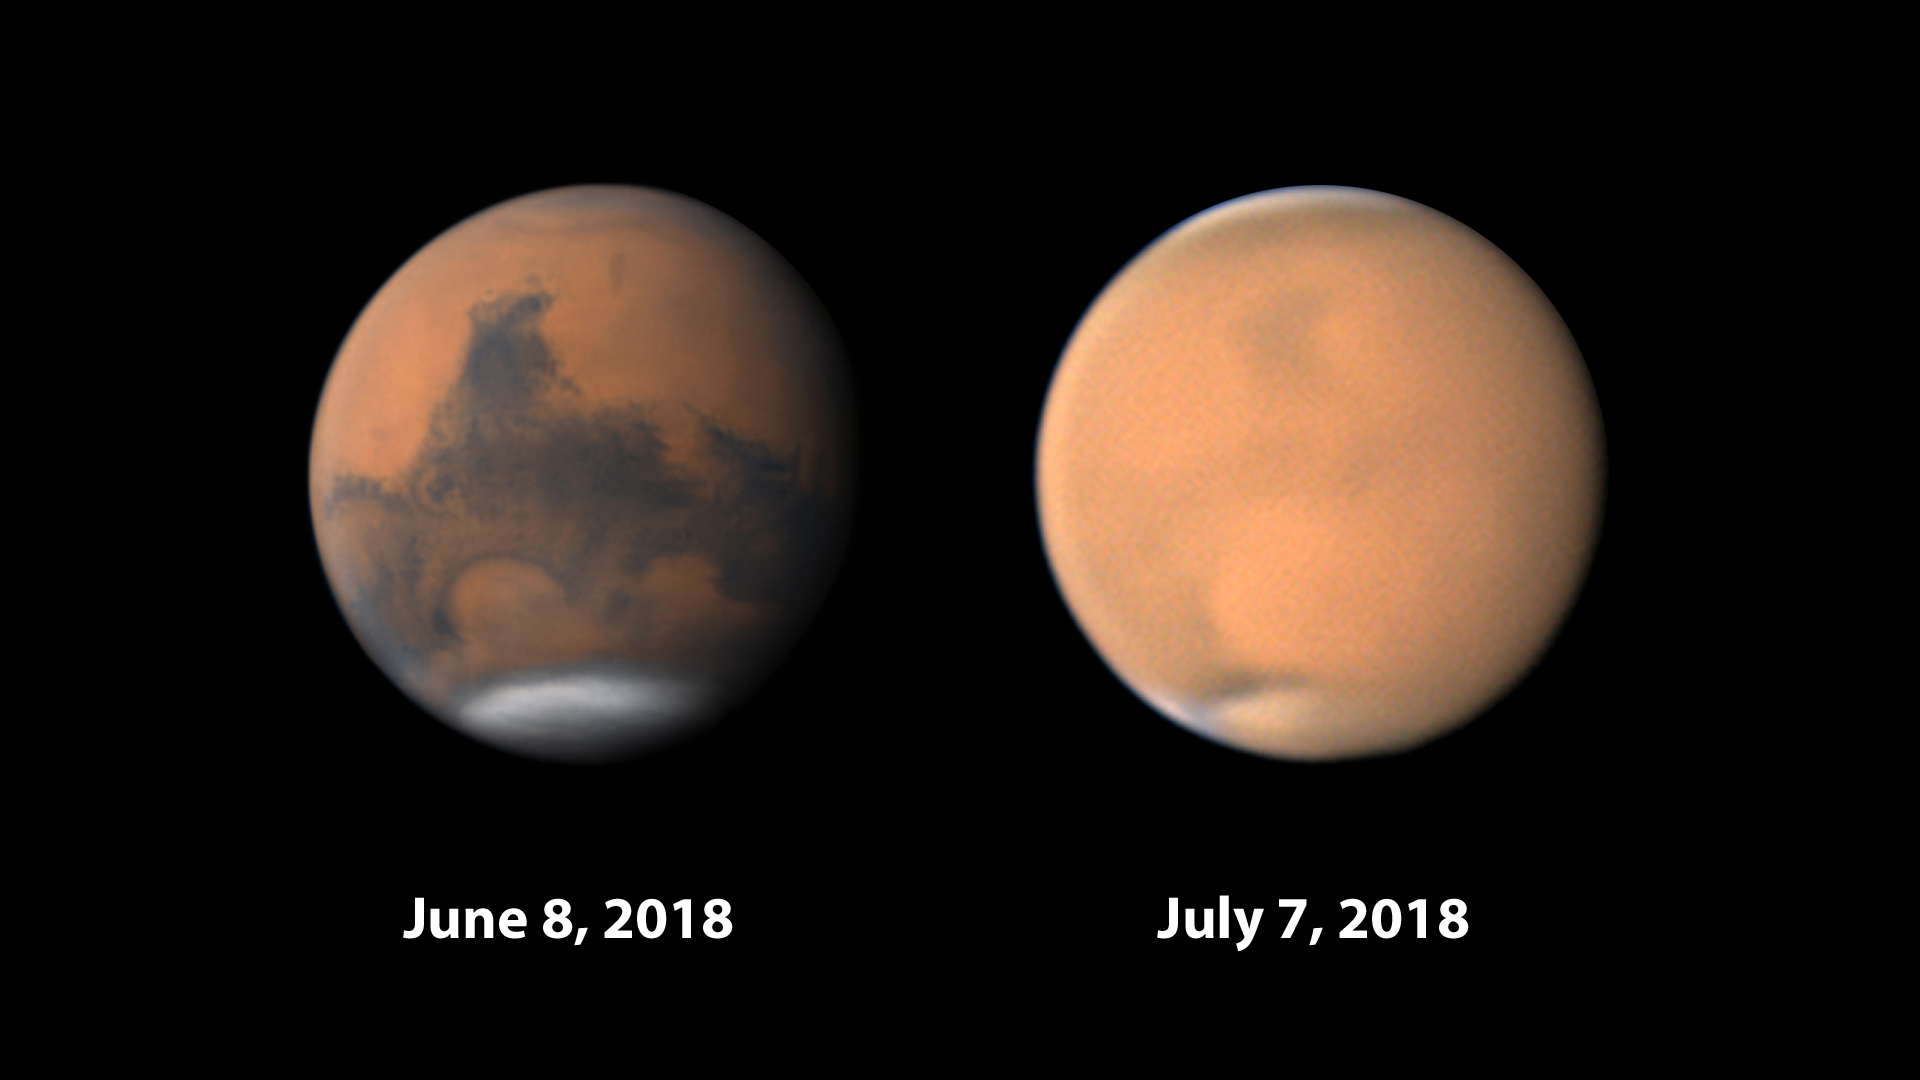 Mars clear-dusty comparison